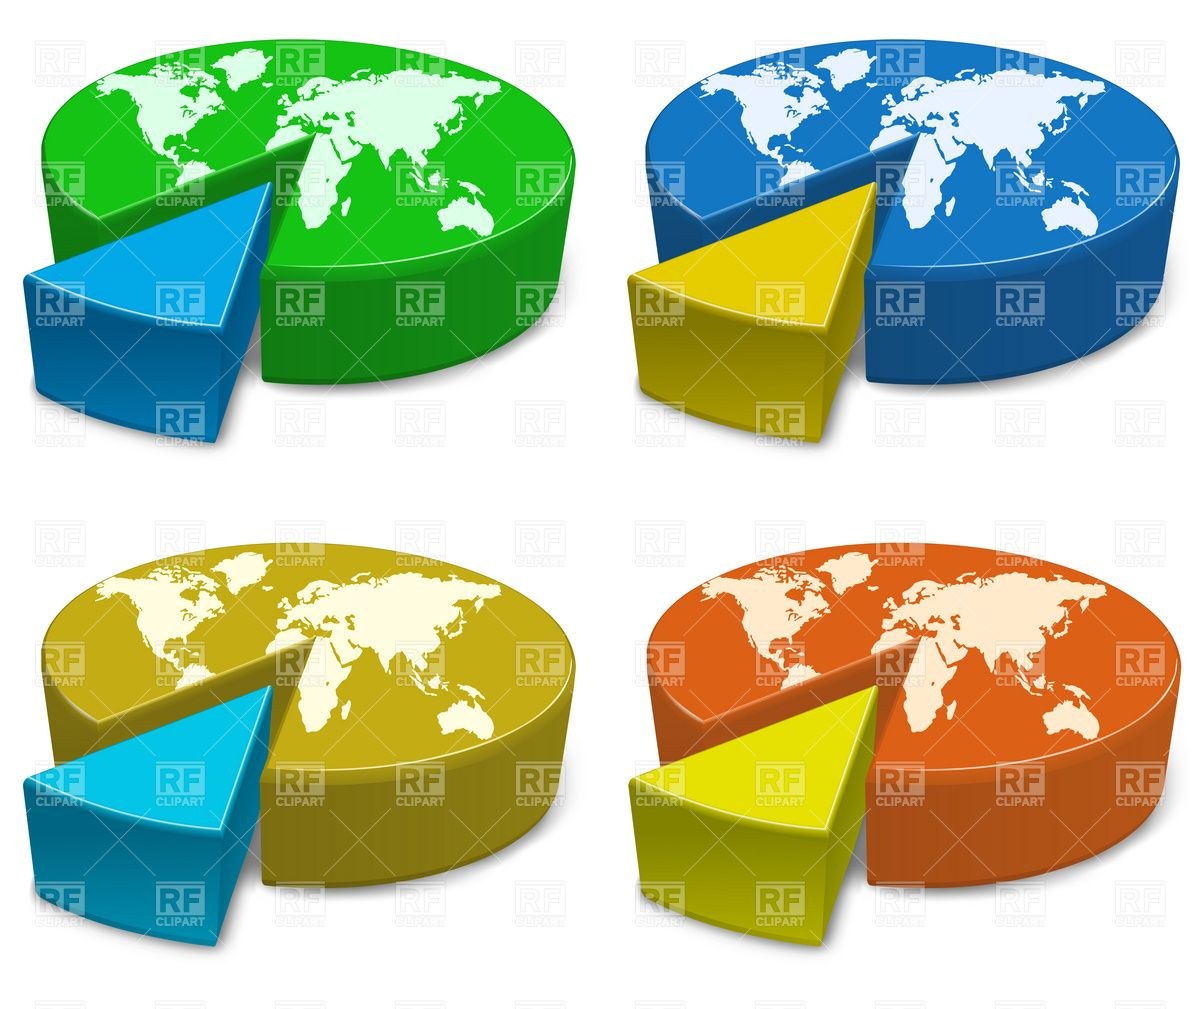 small resolution of download royalty free pie charts of the globe with the world divided into two parts